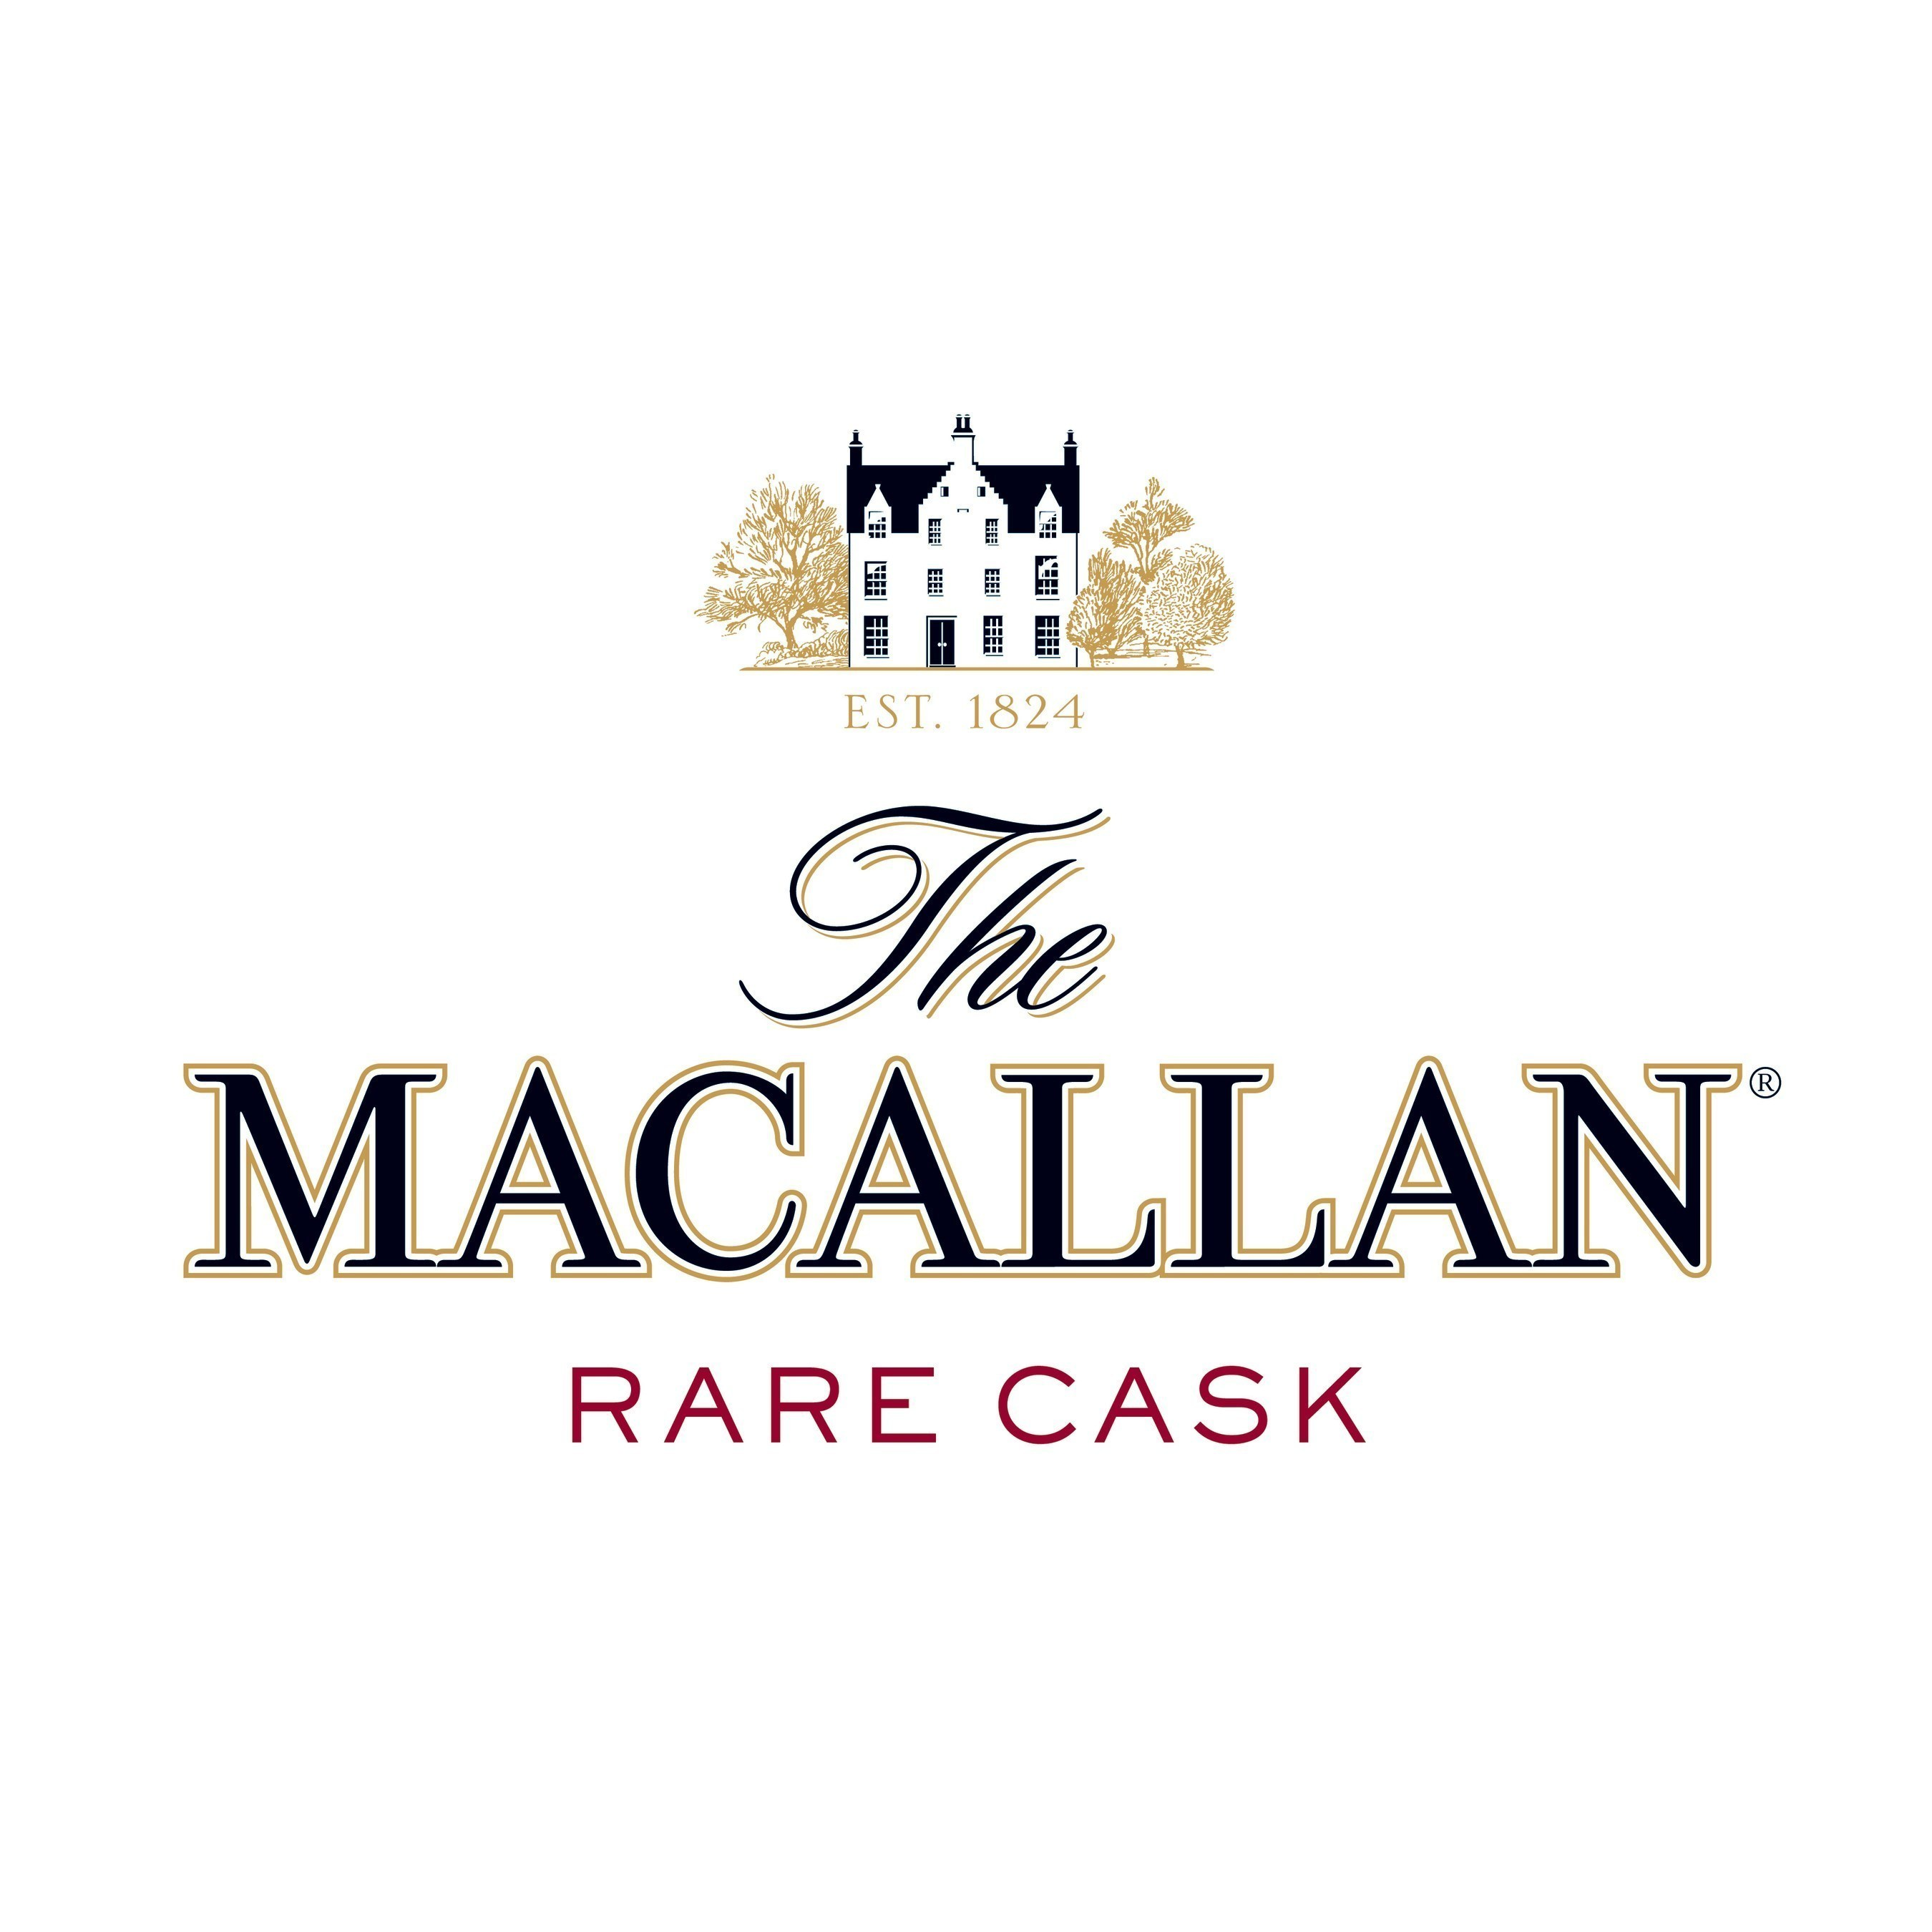 The Macallan Partners With Paddle8 To Present An Auction Of Select Items That Celebrate Rare Cask's Exquisite Wood, Flavor And Natural Color